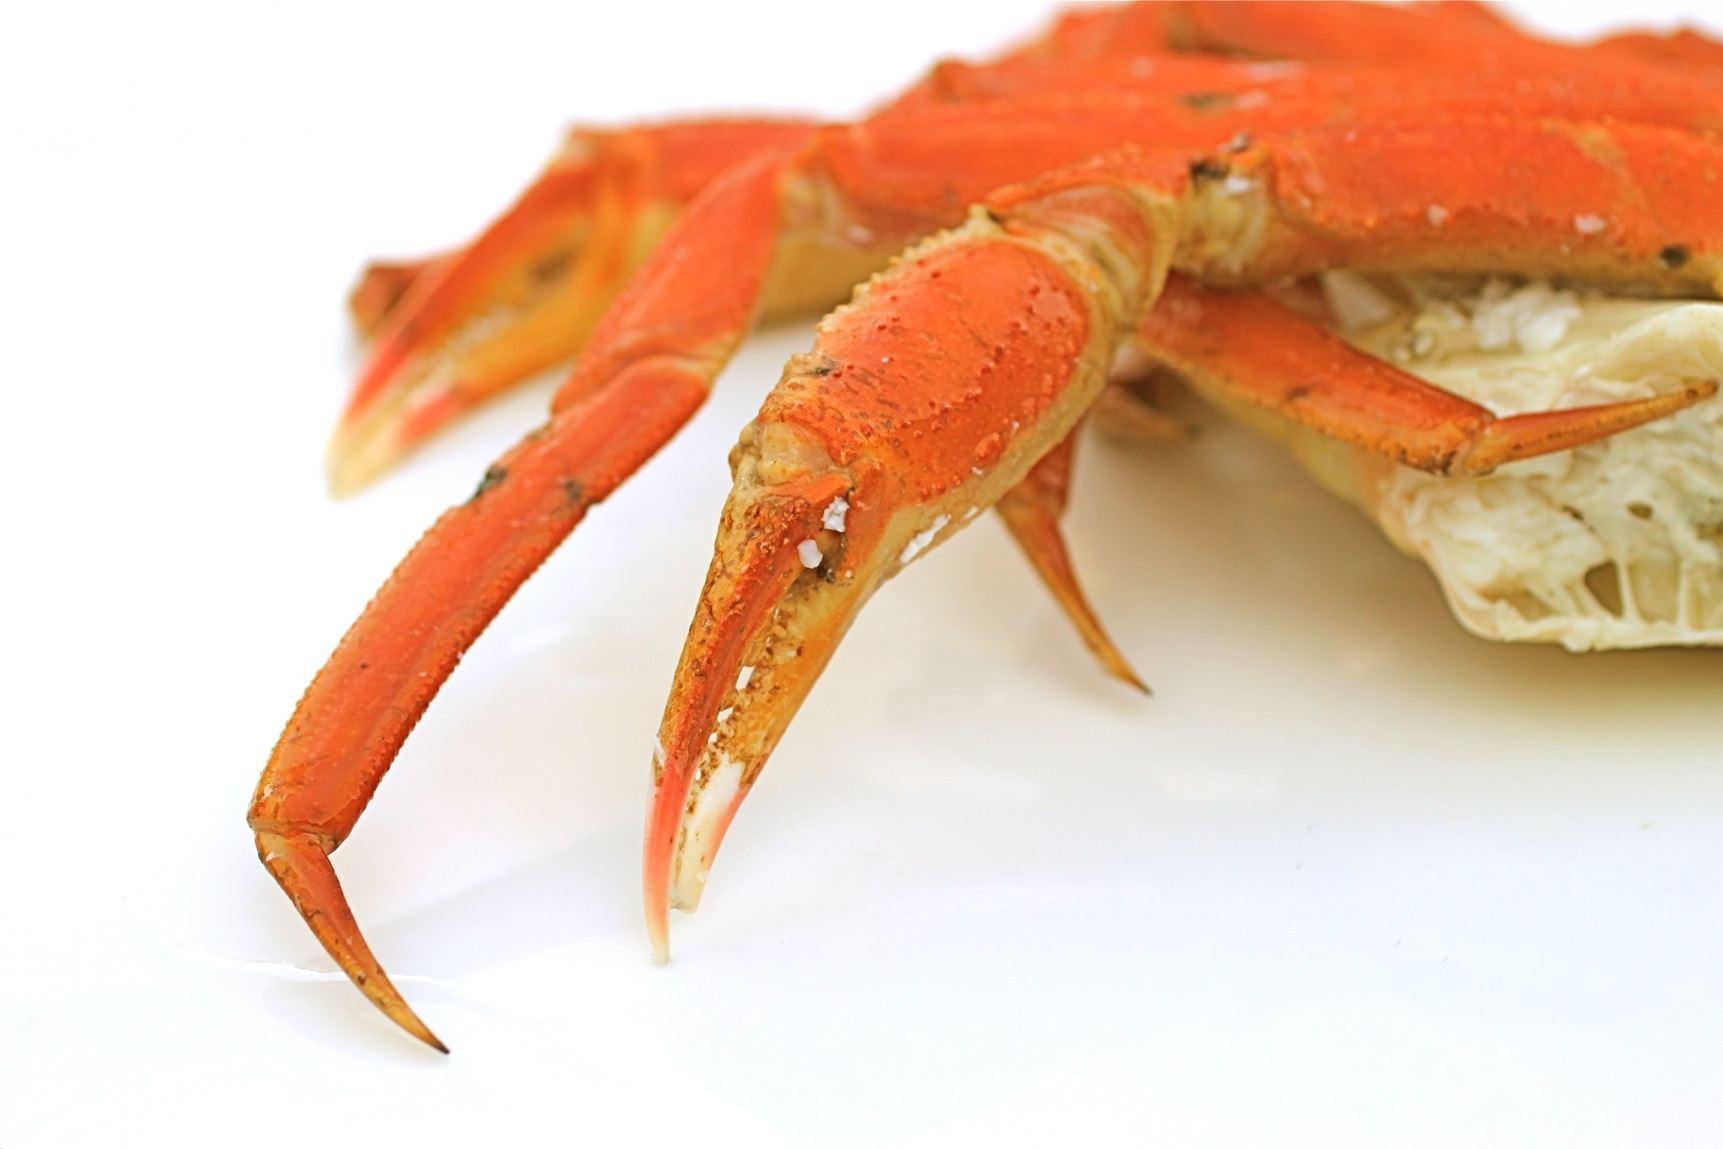 Old-School Comfort Food: The Way I Learned to Cook: Alex Pictures of snow crab legs